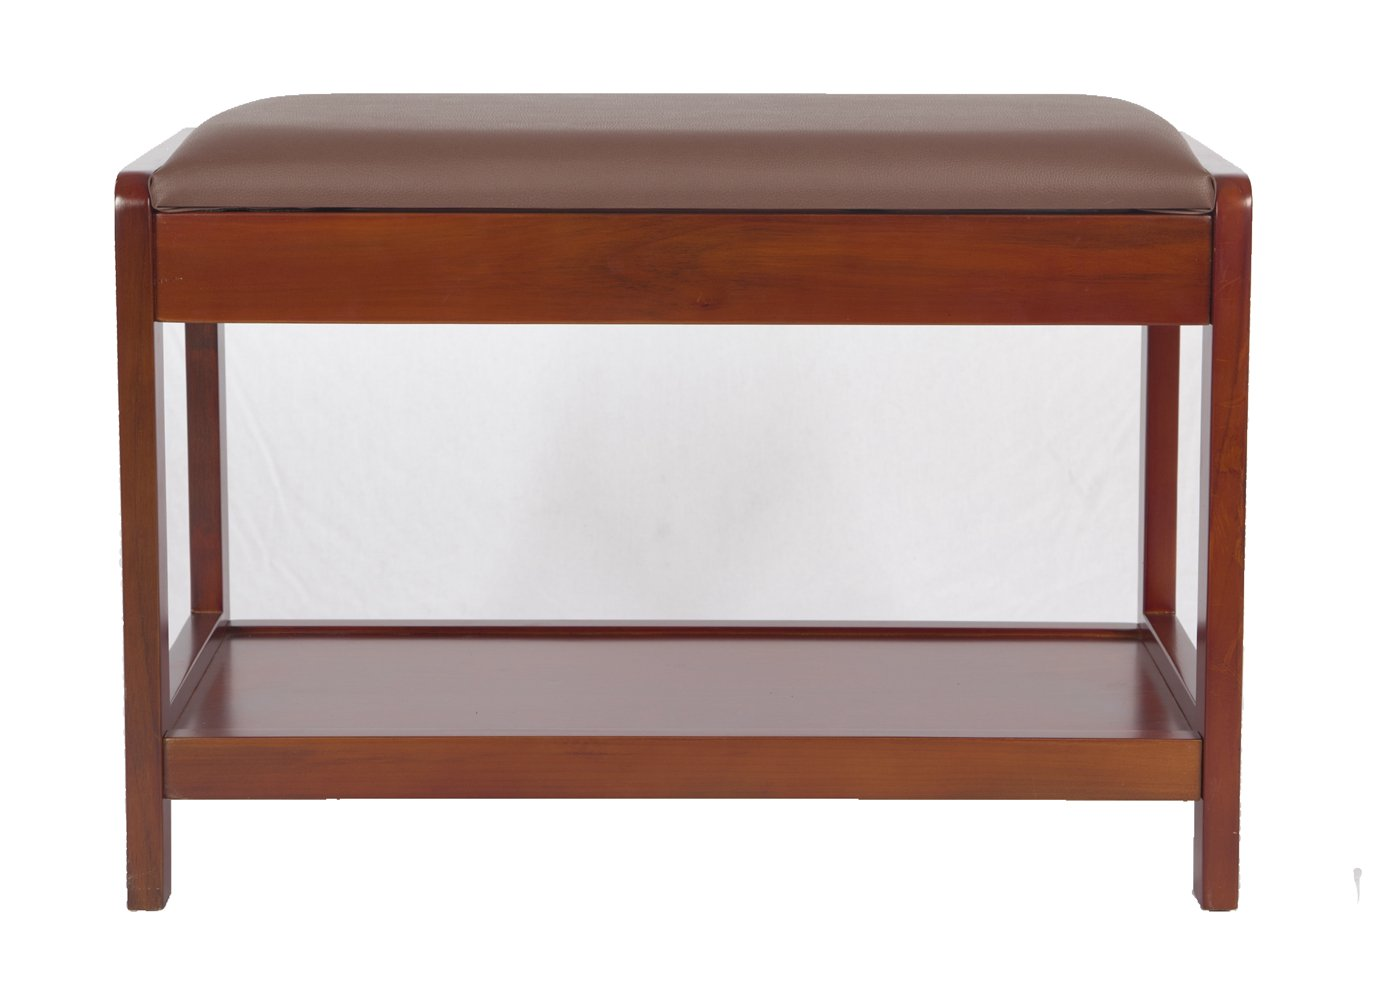 Yaker's collection Firm Wood Entryway Shoe Storage Bench Elegant Ottoman with Leather Padded